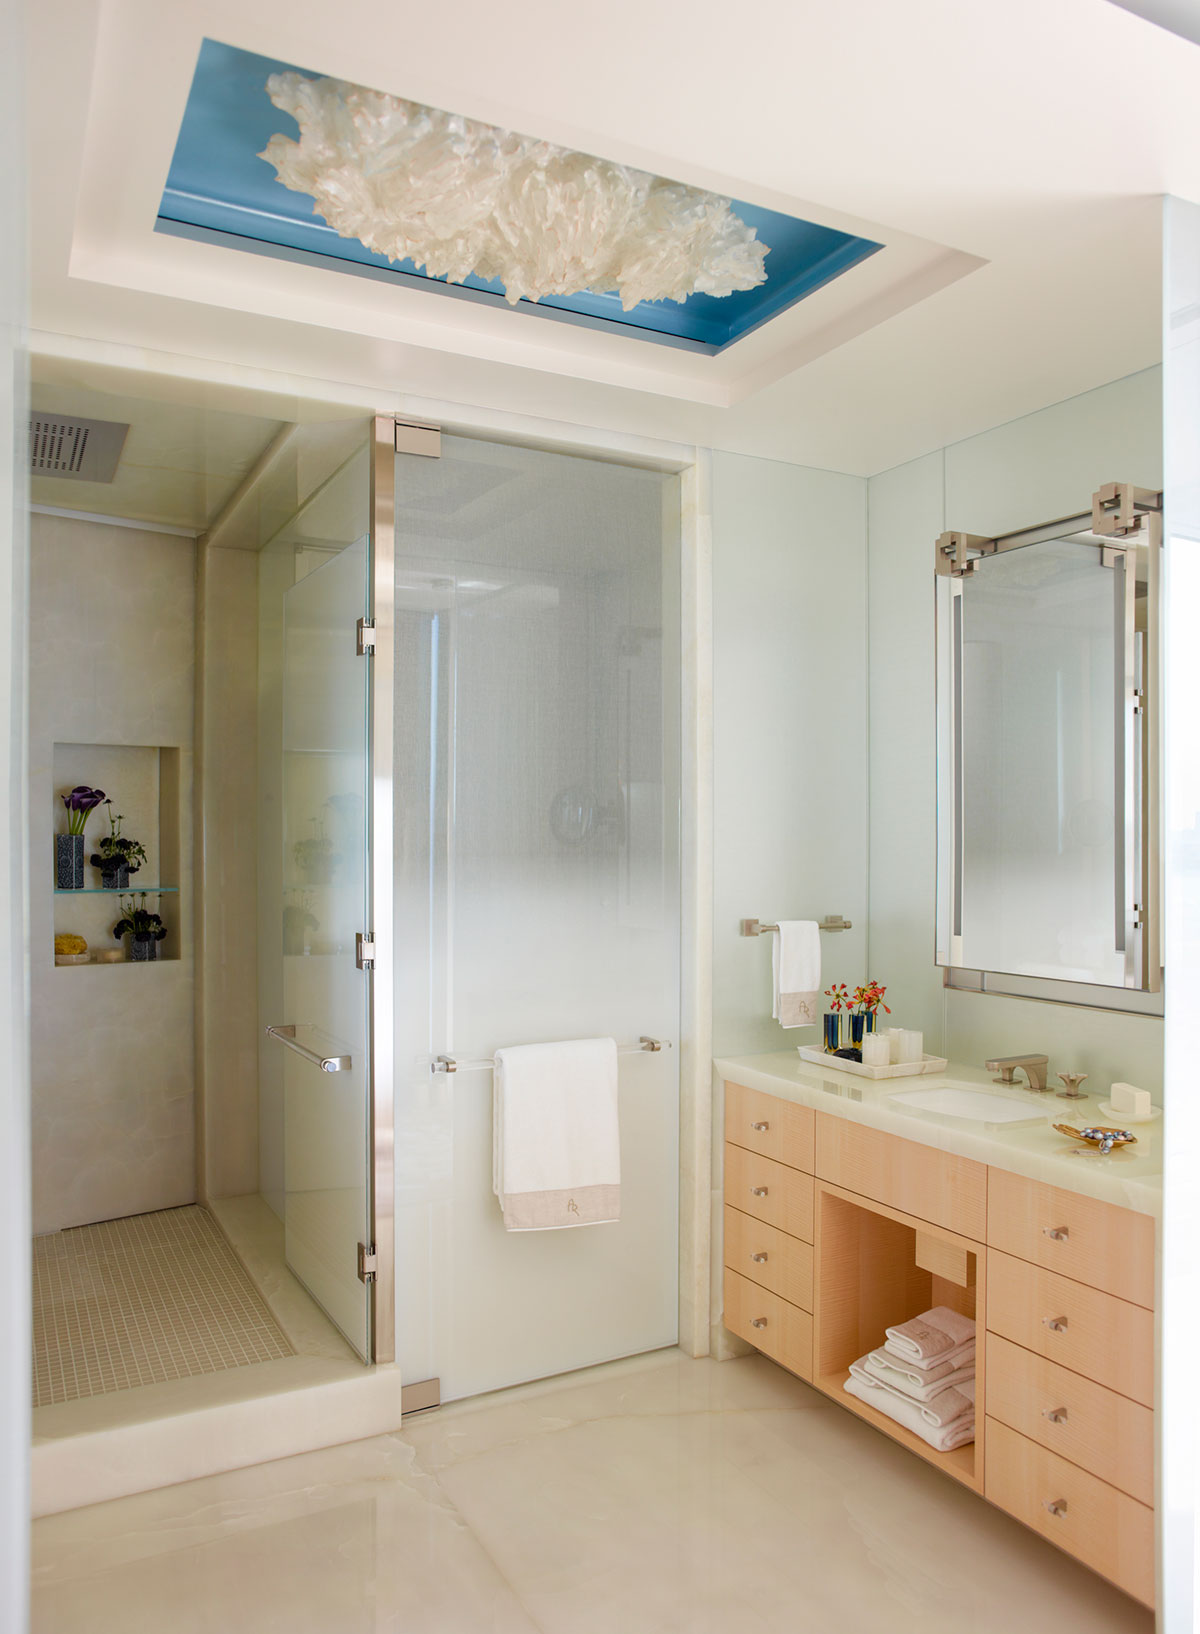 4 ideas to turn your bathroom into a spa mansion global for Turn your bathroom into a spa